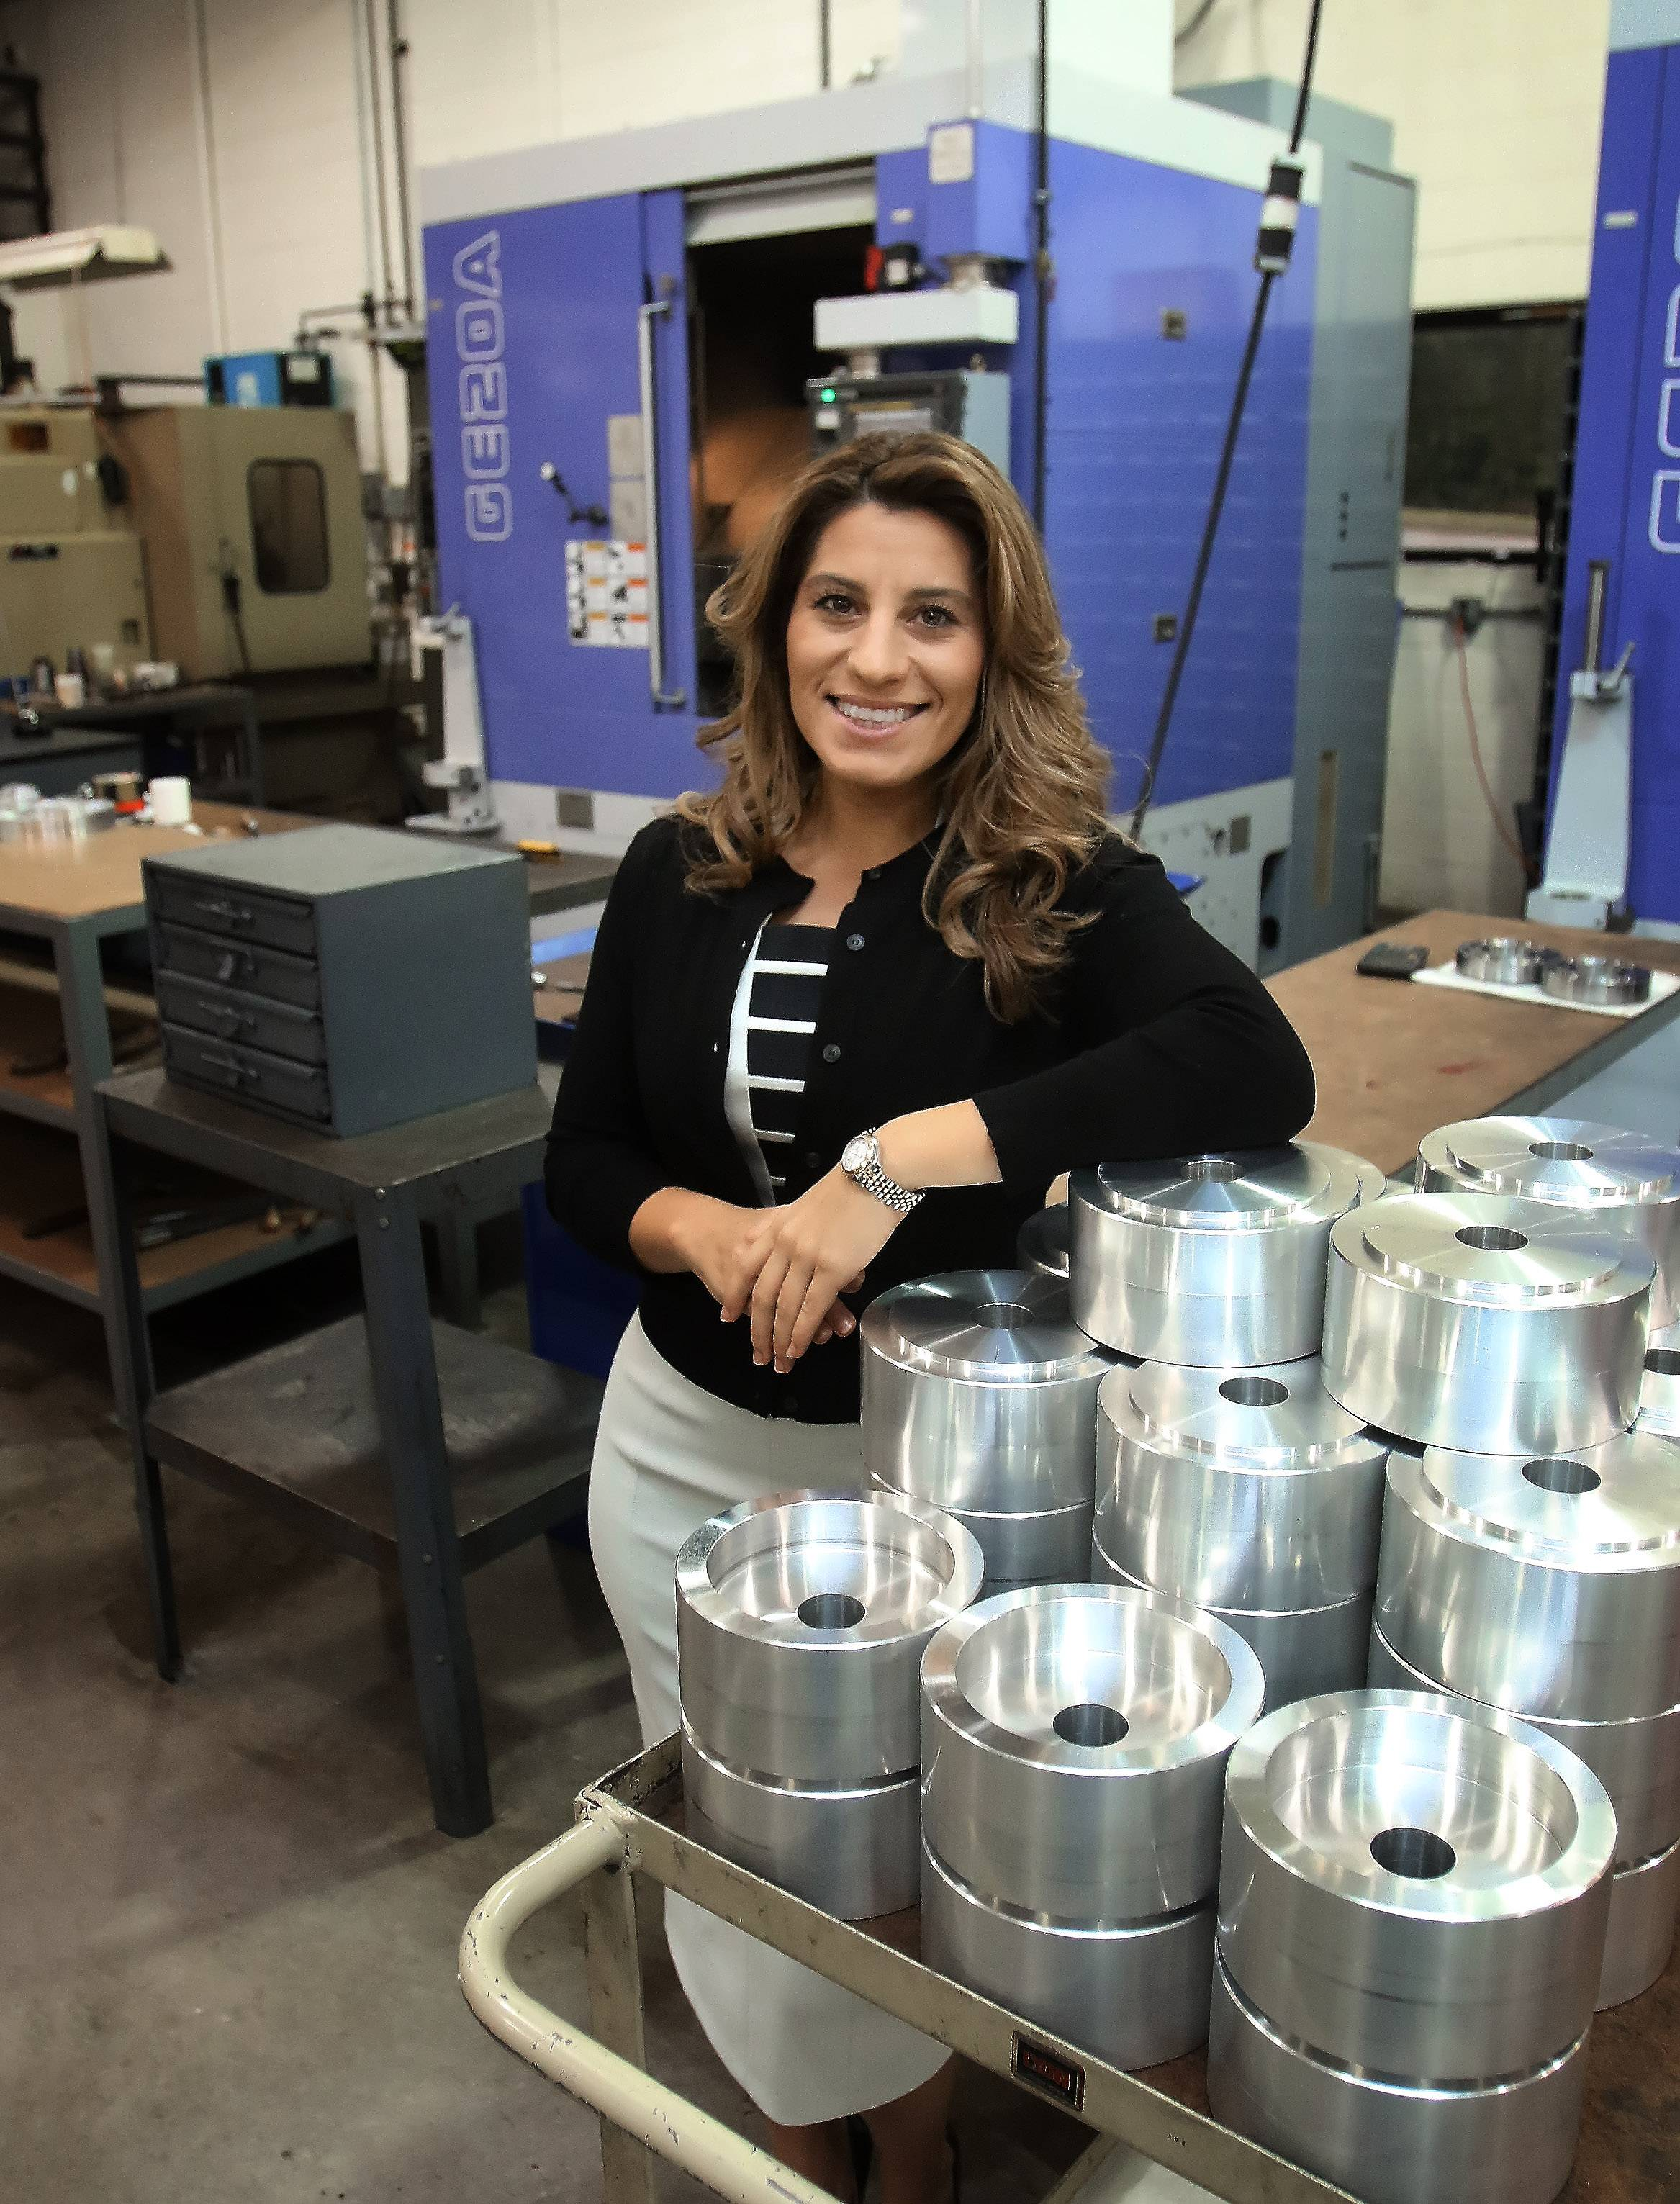 Shifting gears: Founder's daughter pulls HM Manufacturing out of trouble, earning CEO title